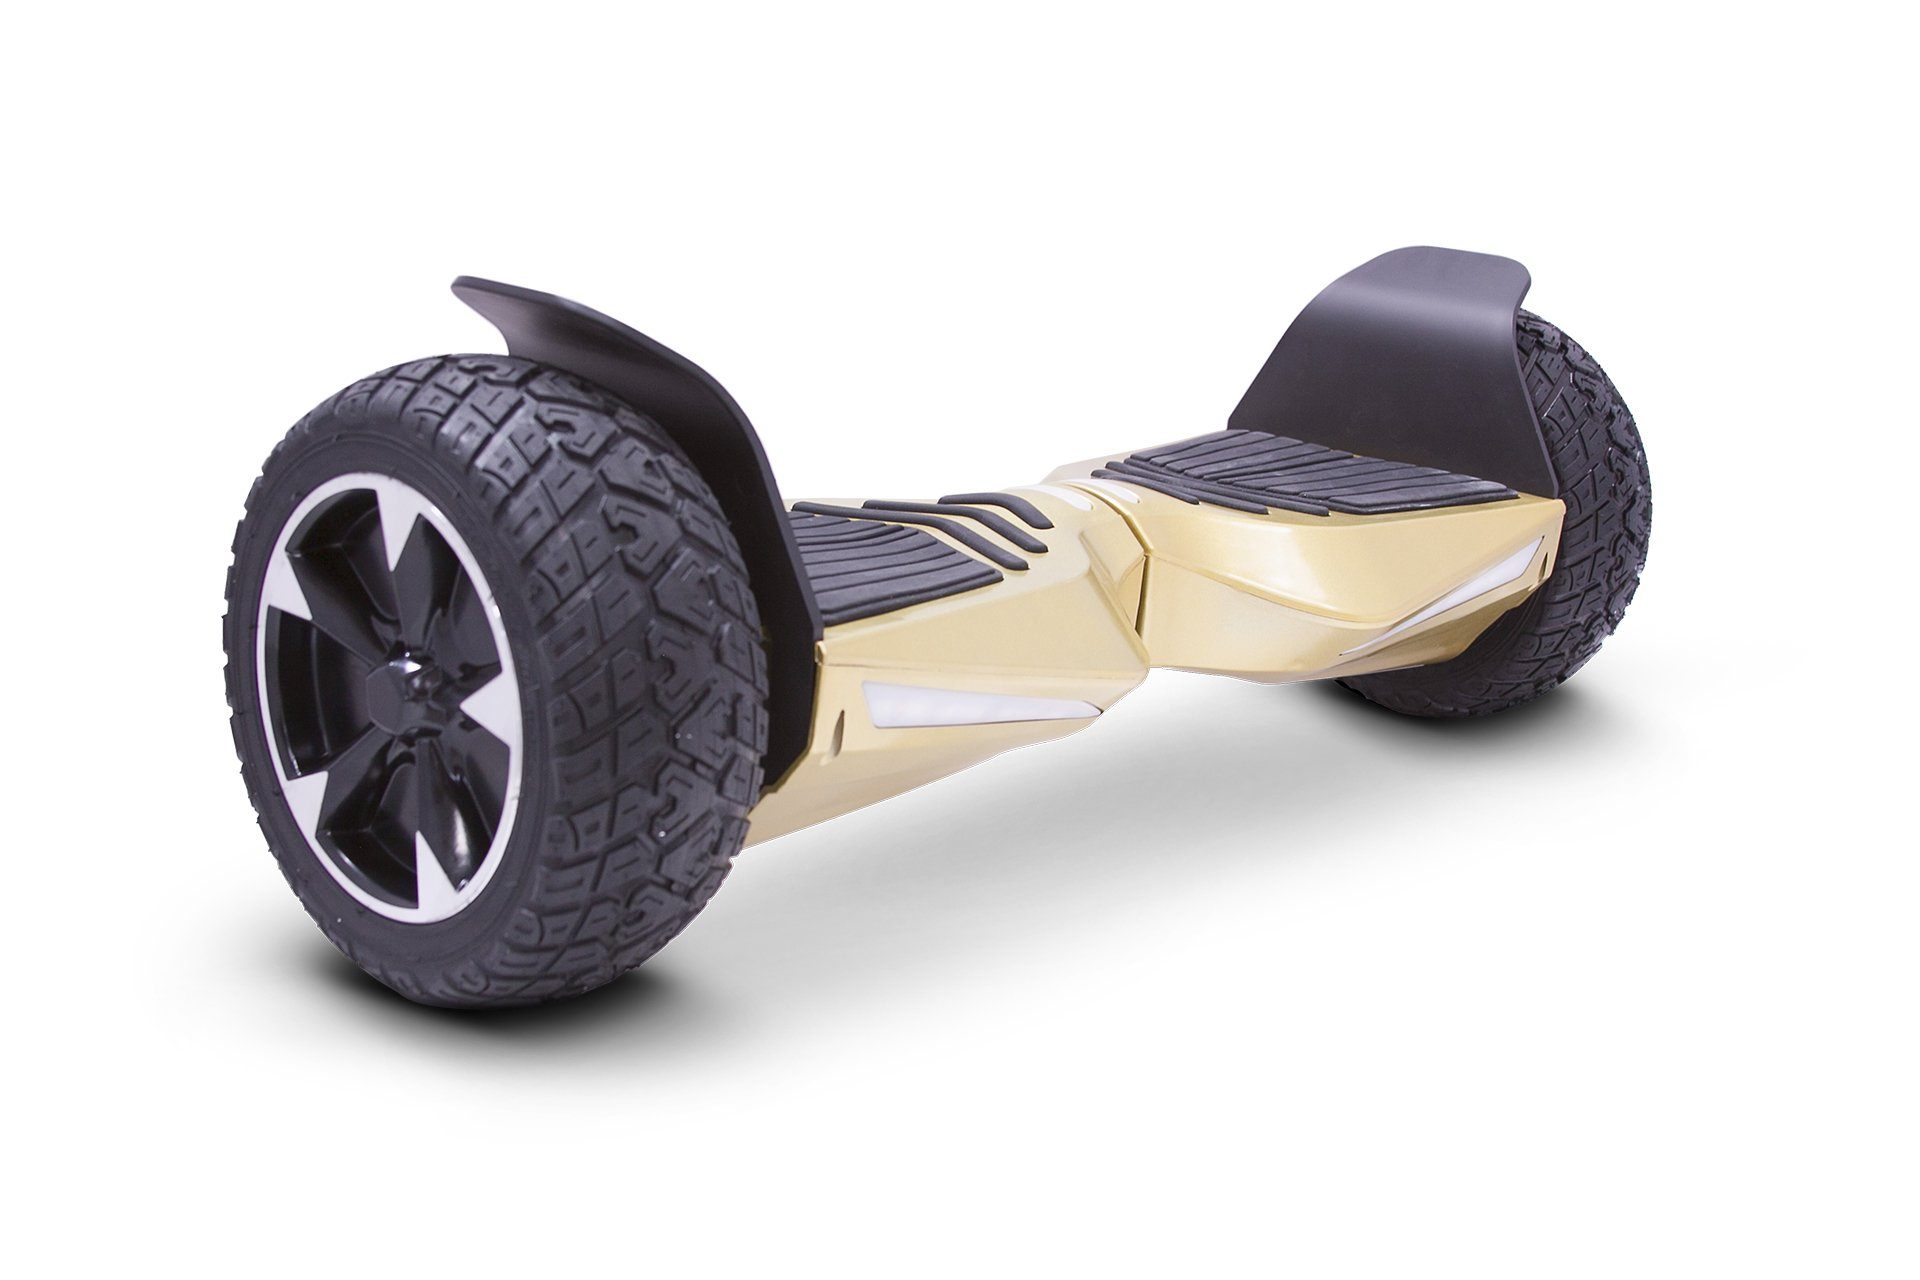 2018 Two Wheel Self Balance Scooter Off-Road Hoverboard UL 2272 Bluetooth Speakers 8.5 Inch All Terrain Road Condition (Gold) by Bowen